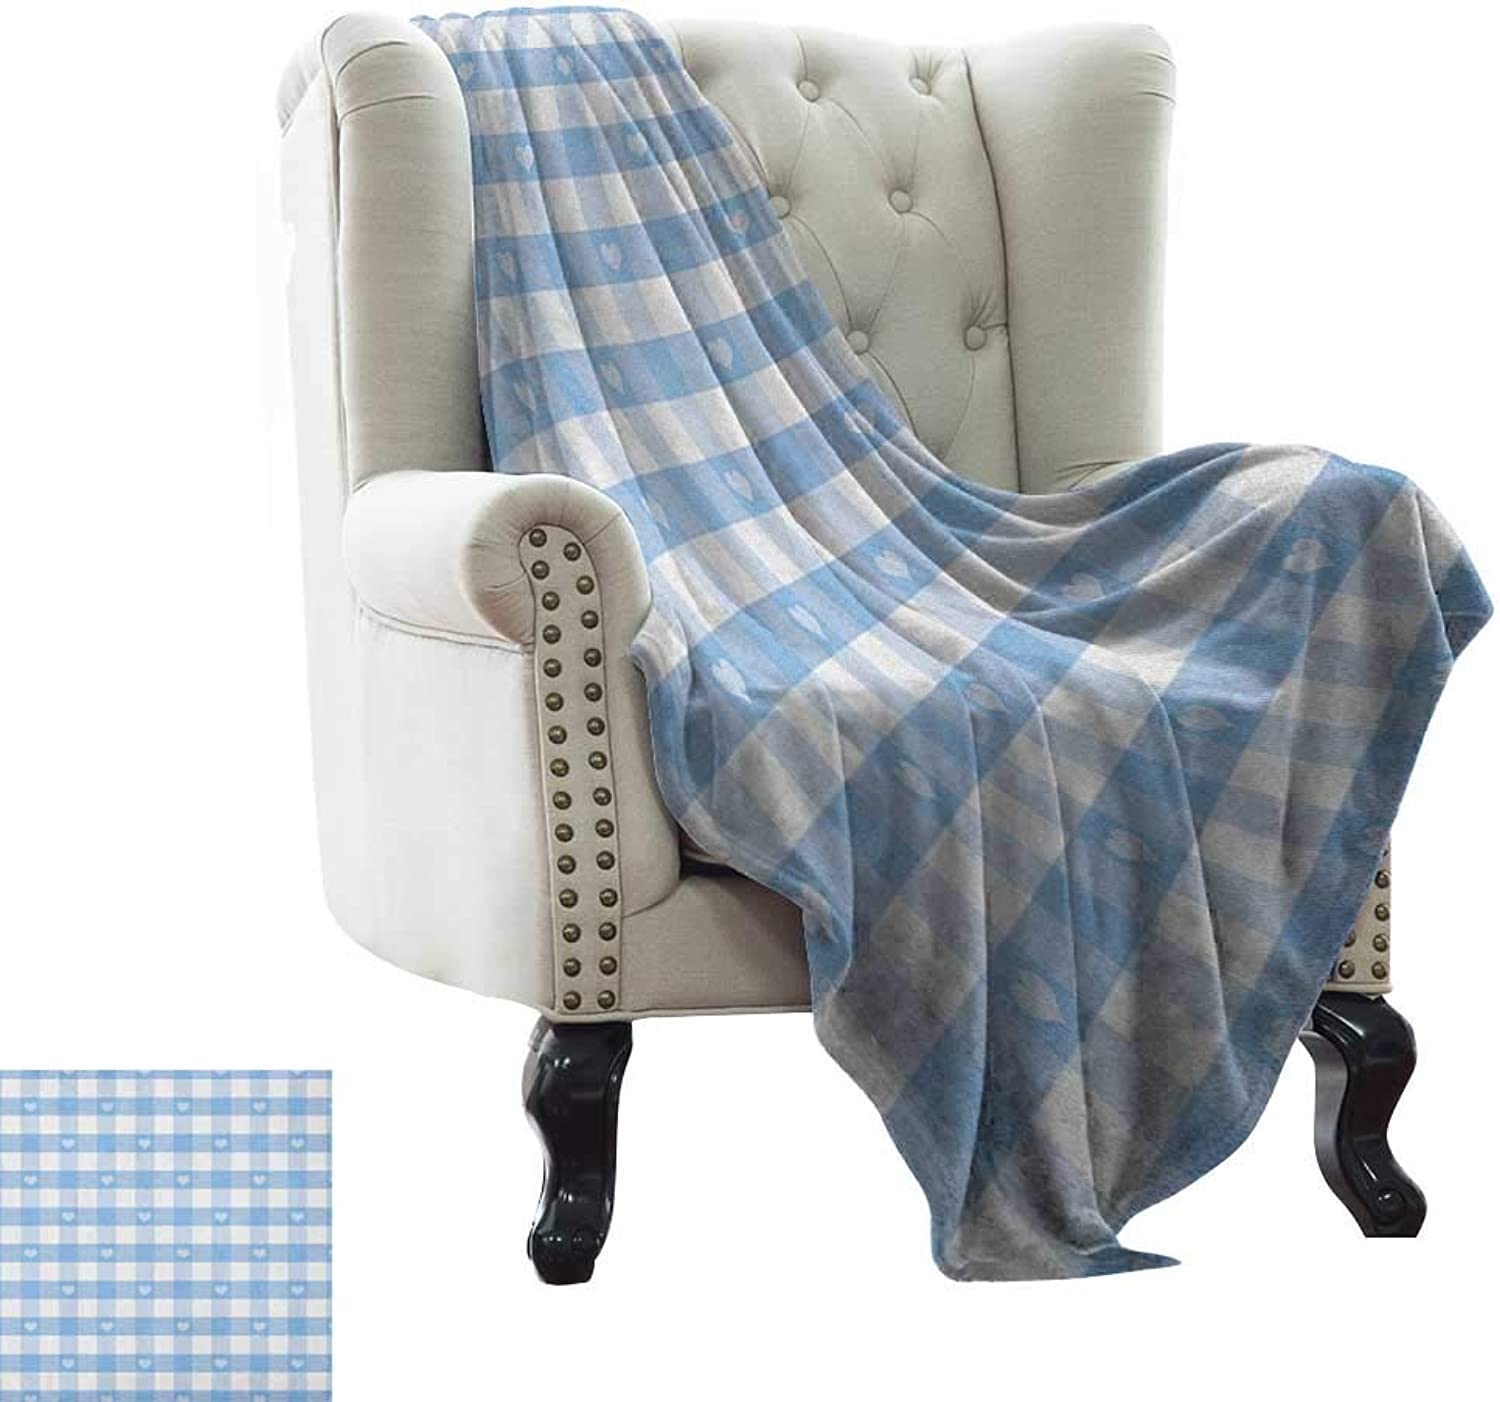 Warmfamily Checkered, Throw Blanket,Gingham Motif with Cute Little Hearts Pastel bluee Baby Shower Kids Theme 60 x36 ,Super Soft and Comfortable,Suitable for Sofas,Chairs,beds